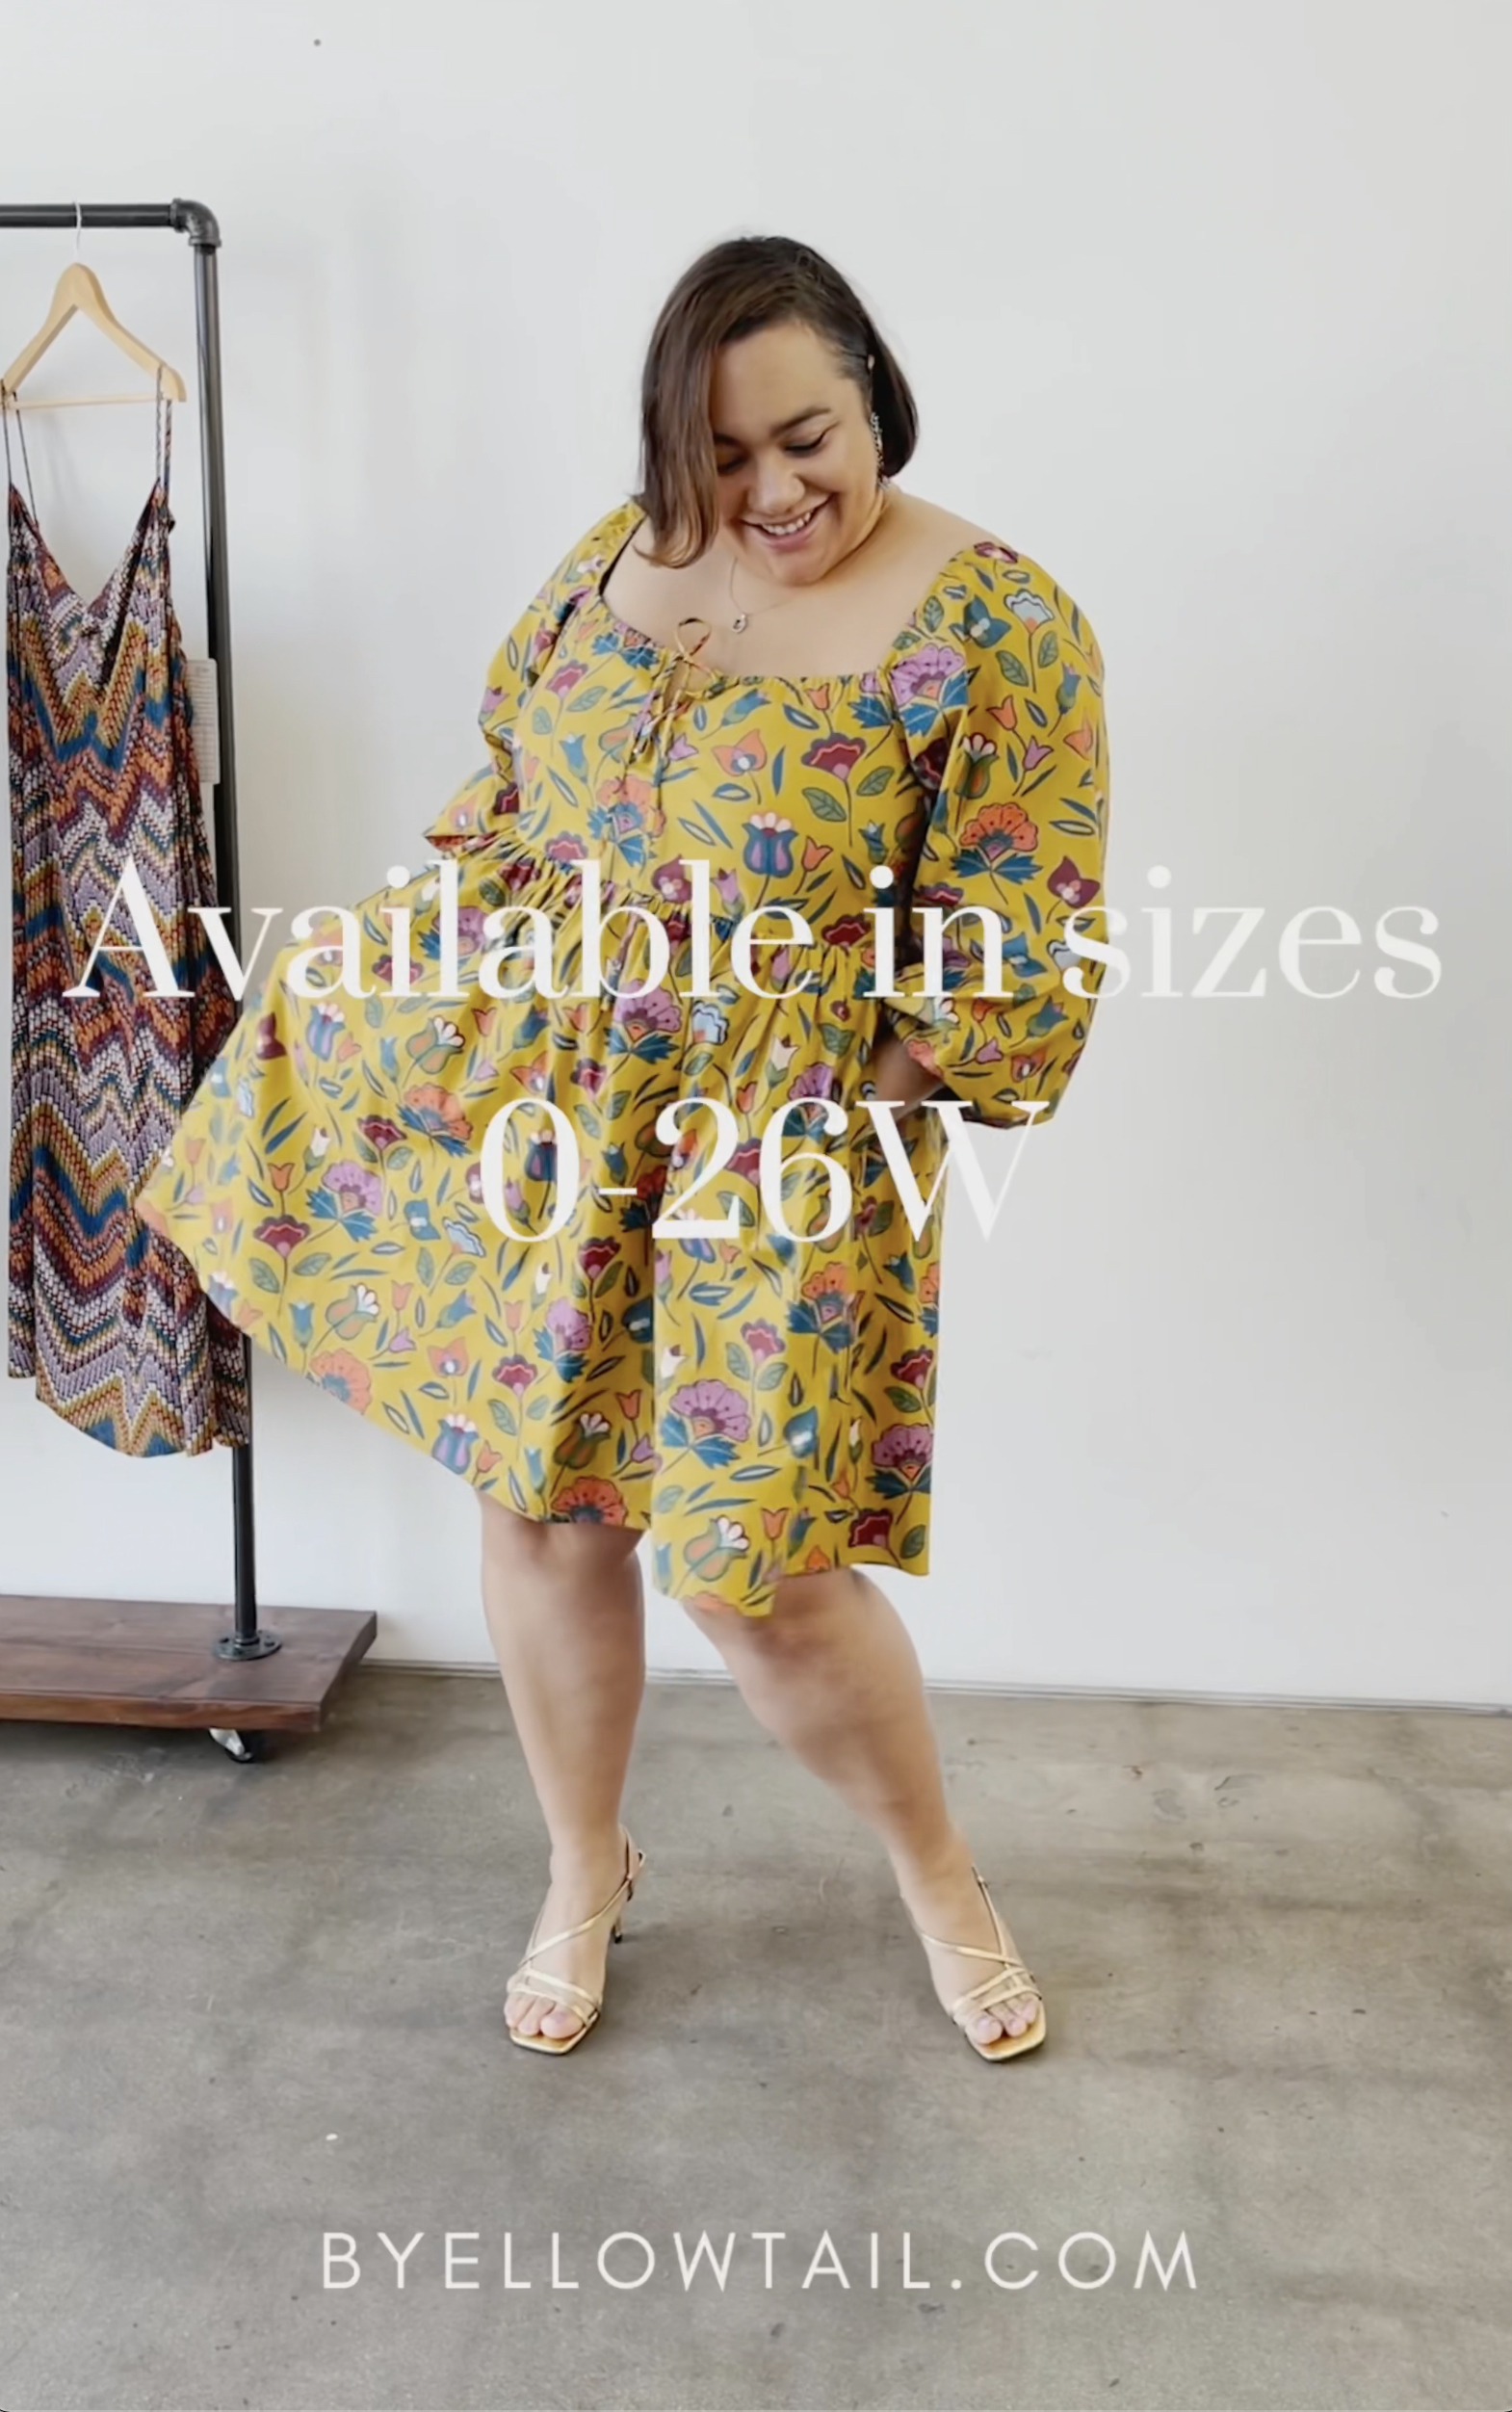 The Chief of Style, Amy Stretten, wearing Native American fashion designer, Bethany Yellowtail's Summer 2021 collection, featuring extended sizes size 0 to plus size 26